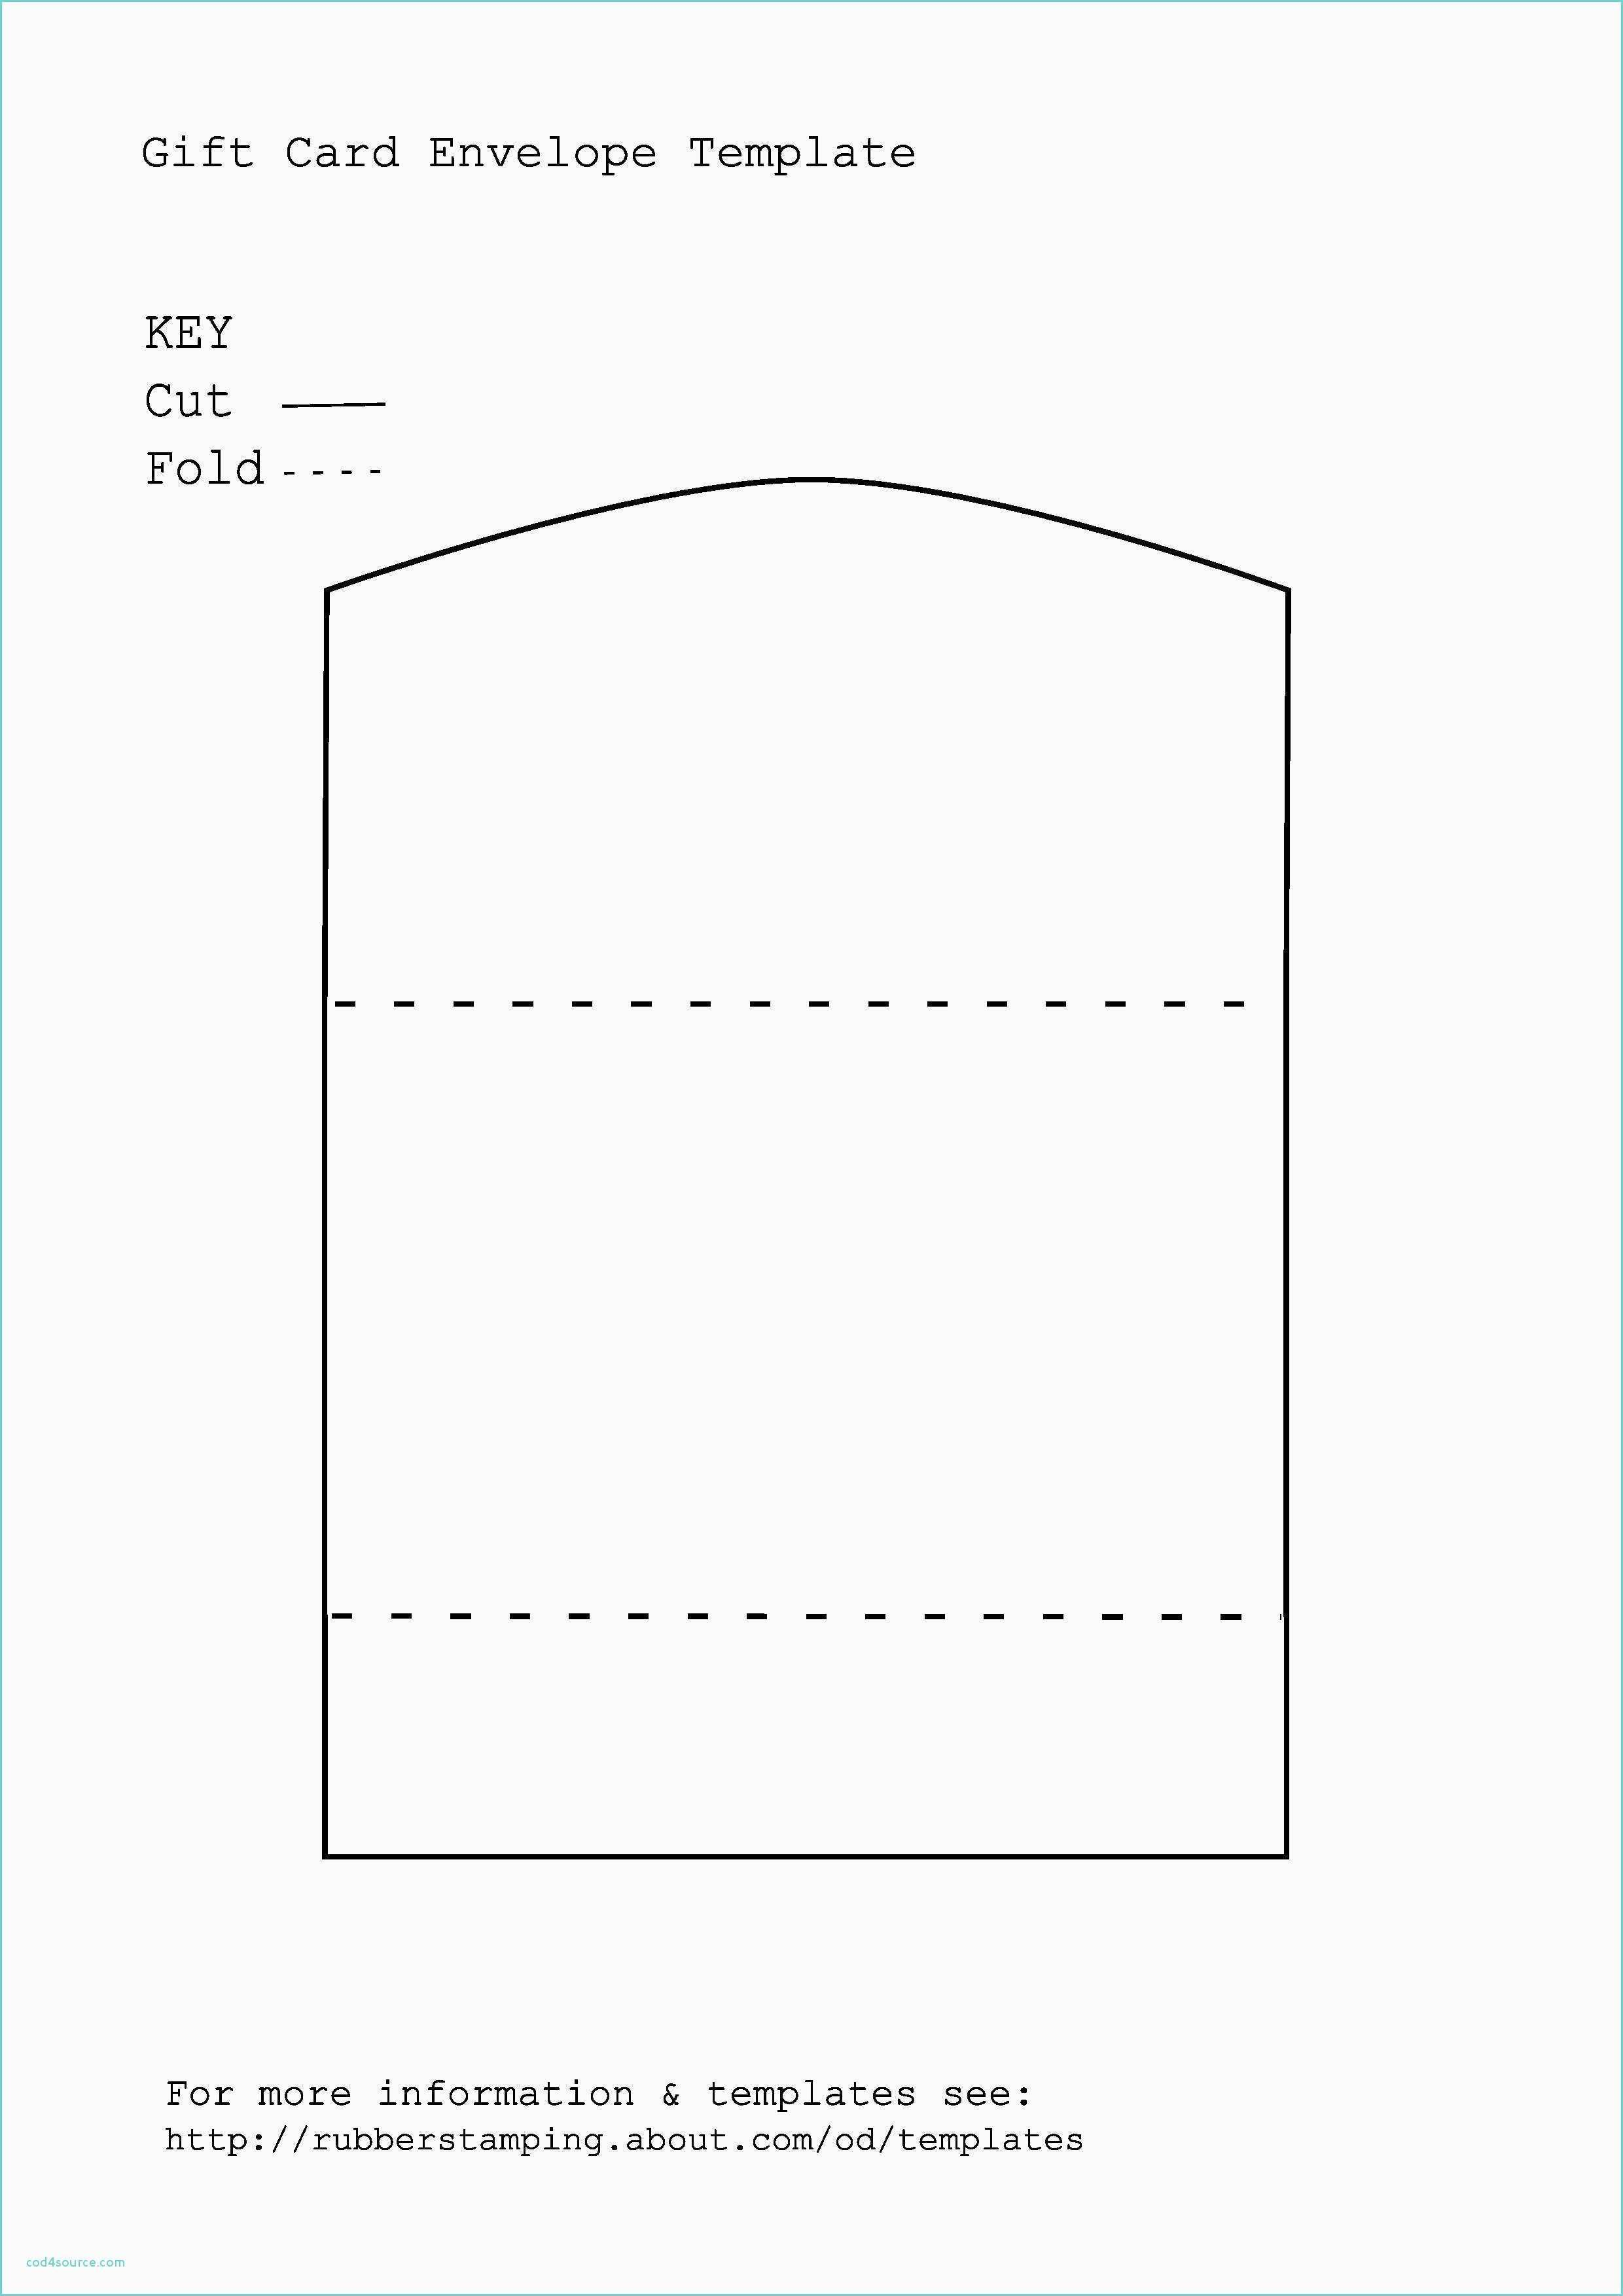 33 Free Party Invitation Envelope Template in Word for Party Invitation Envelope Template